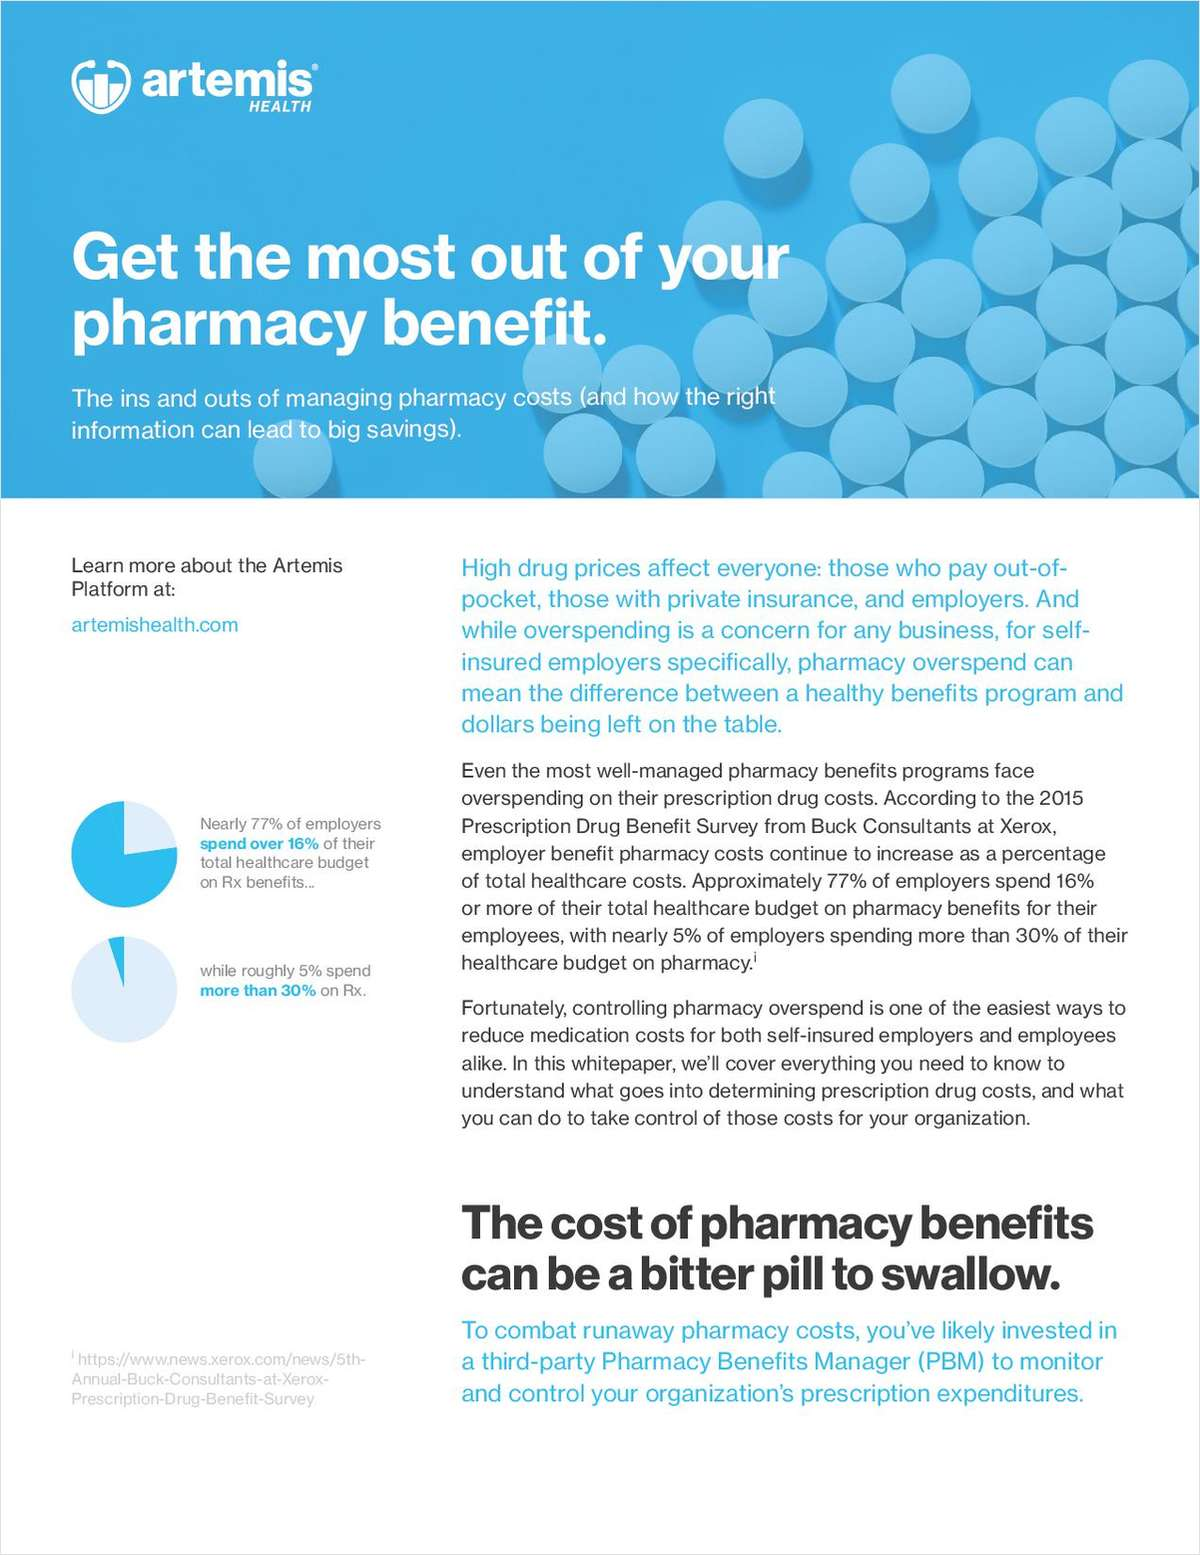 Are You Getting The Most Out of Your Pharmacy Benefits Data?